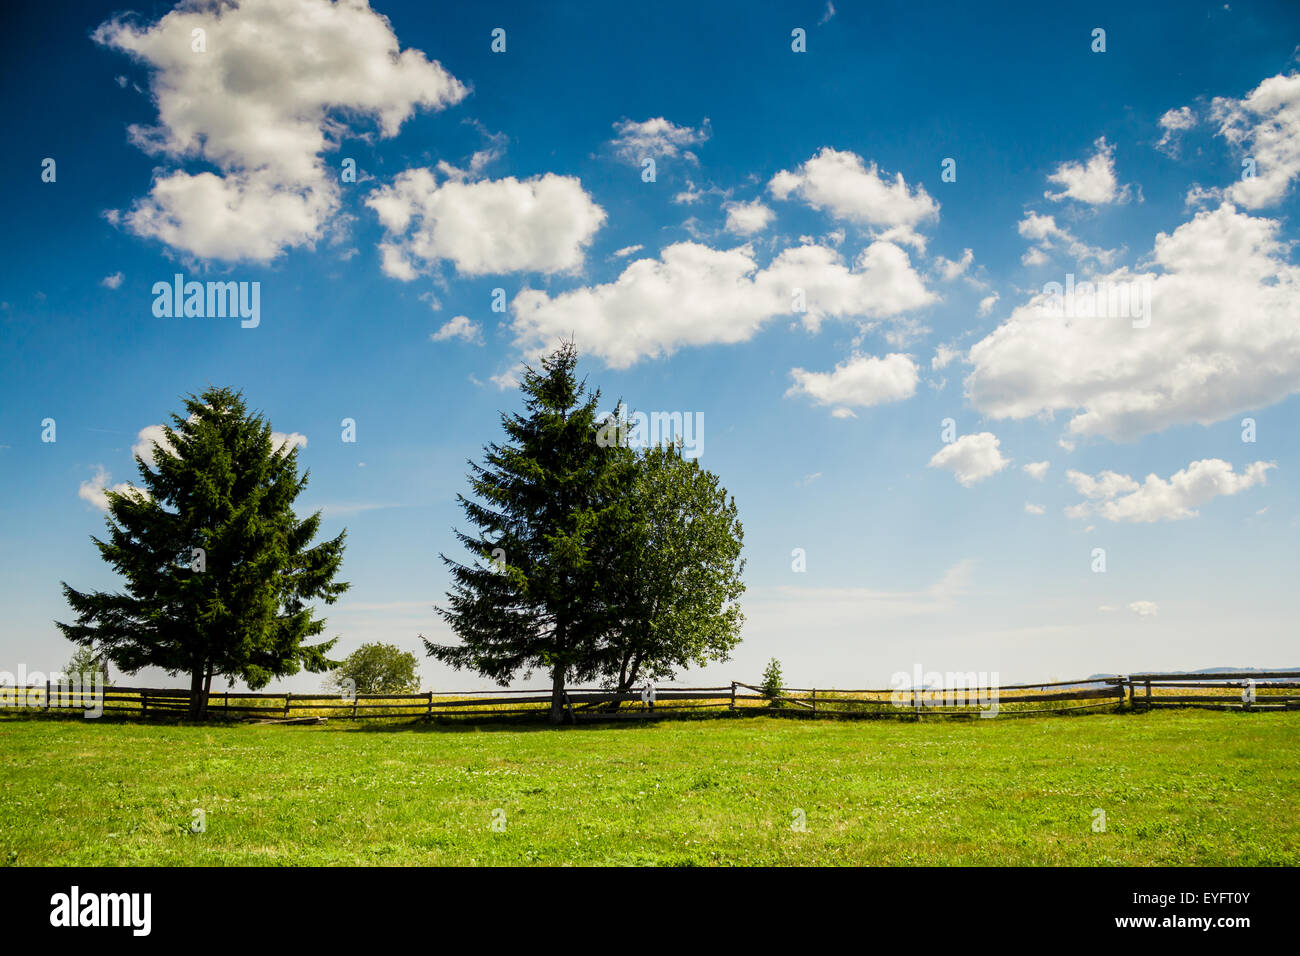 Shot took in a cloudy day somewhere in Marisel, Cluj, Romania - Stock Image